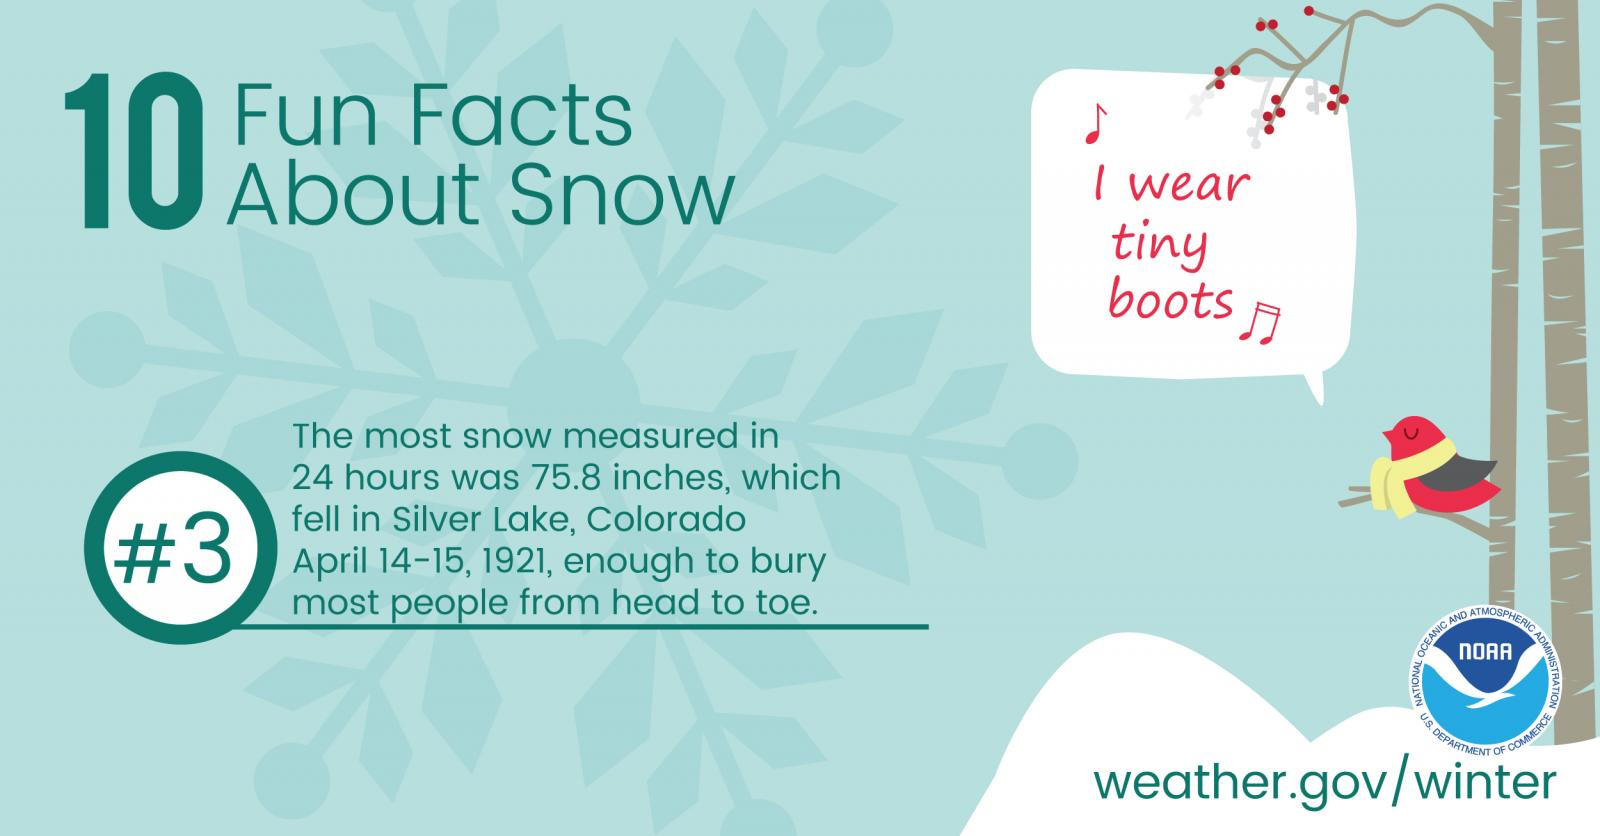 10 Fun Facts About Snow: #3. The most snow measured in 27 hours was 75.8 inches, which fell in Silver Lake, Colorado, April 14-15, 1921, enough to bury most people from head to toe.